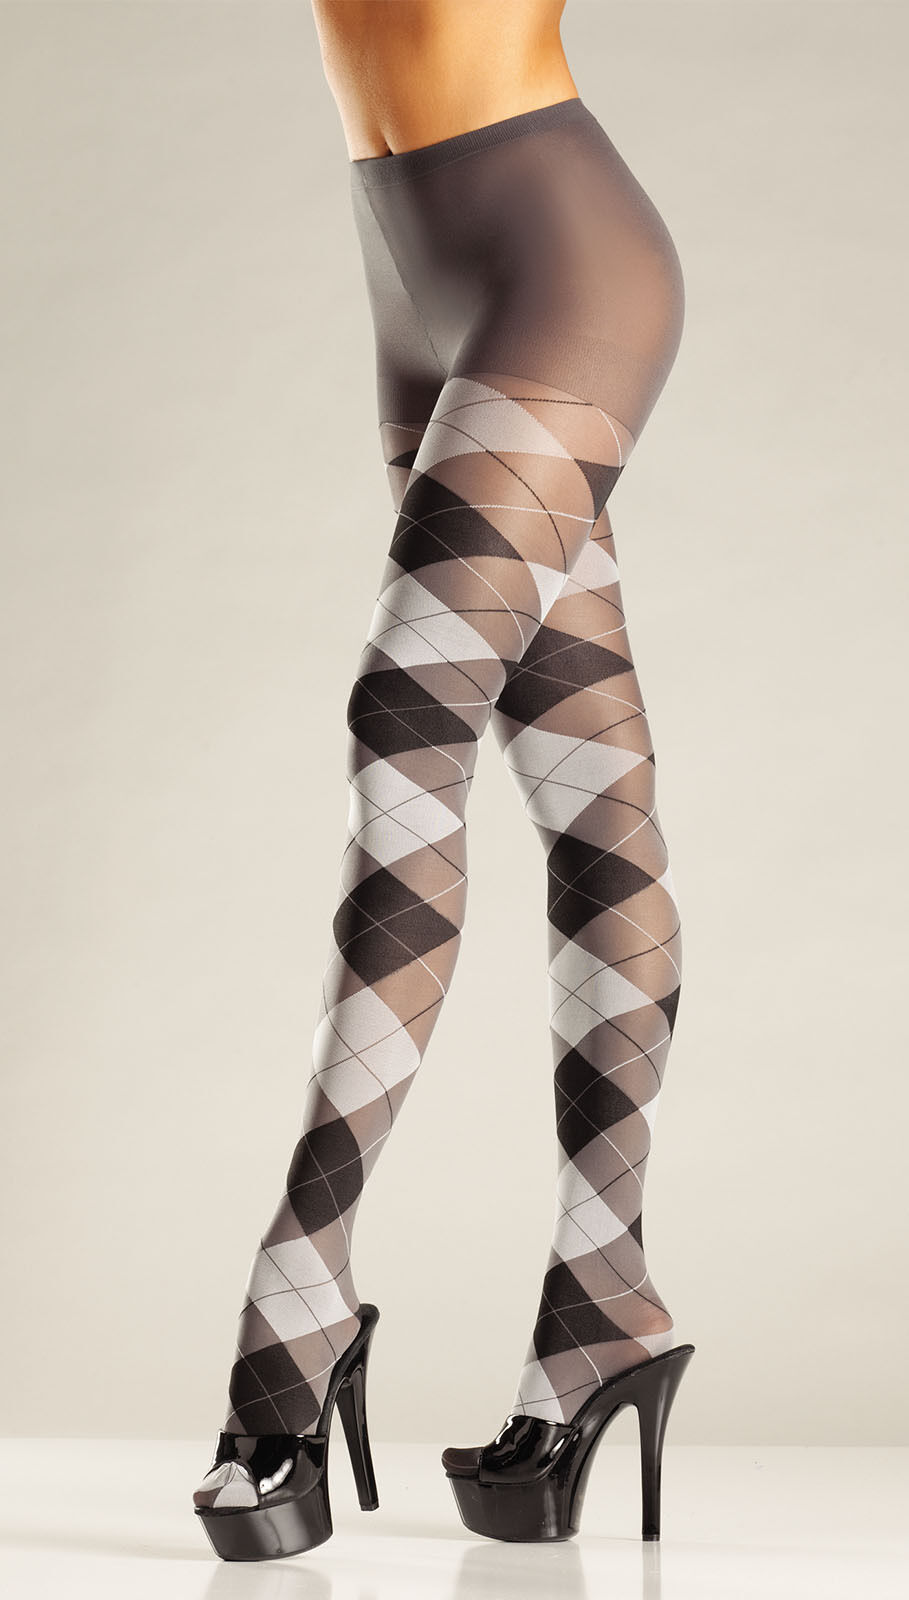 bf3f2c86ab601 Details about BE WICKED FASHION FULL LENGTH PANTYHOSE WOMEN'S ARGYLE  PATTERN STOCKINGS TIGHTS